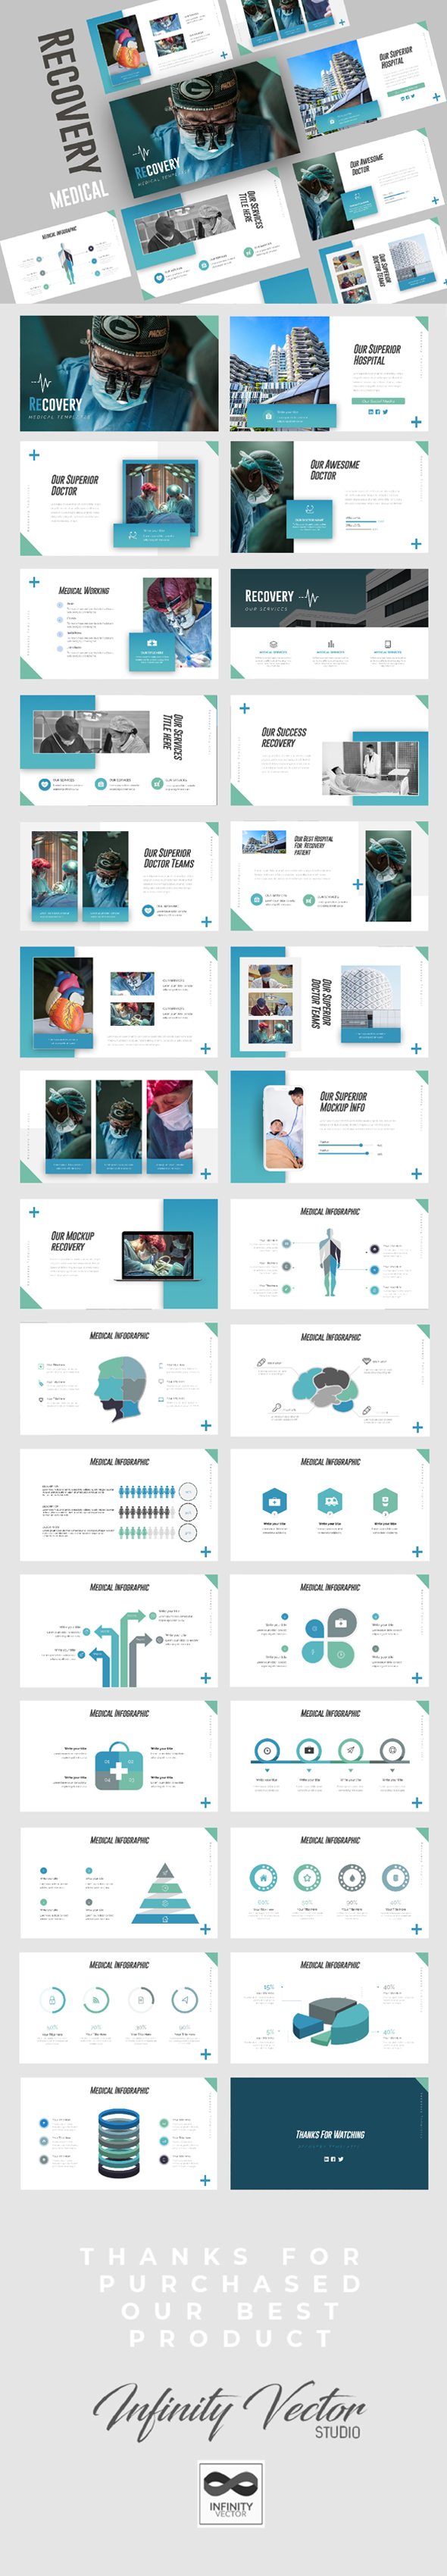 Recovery Medical Powerpoint